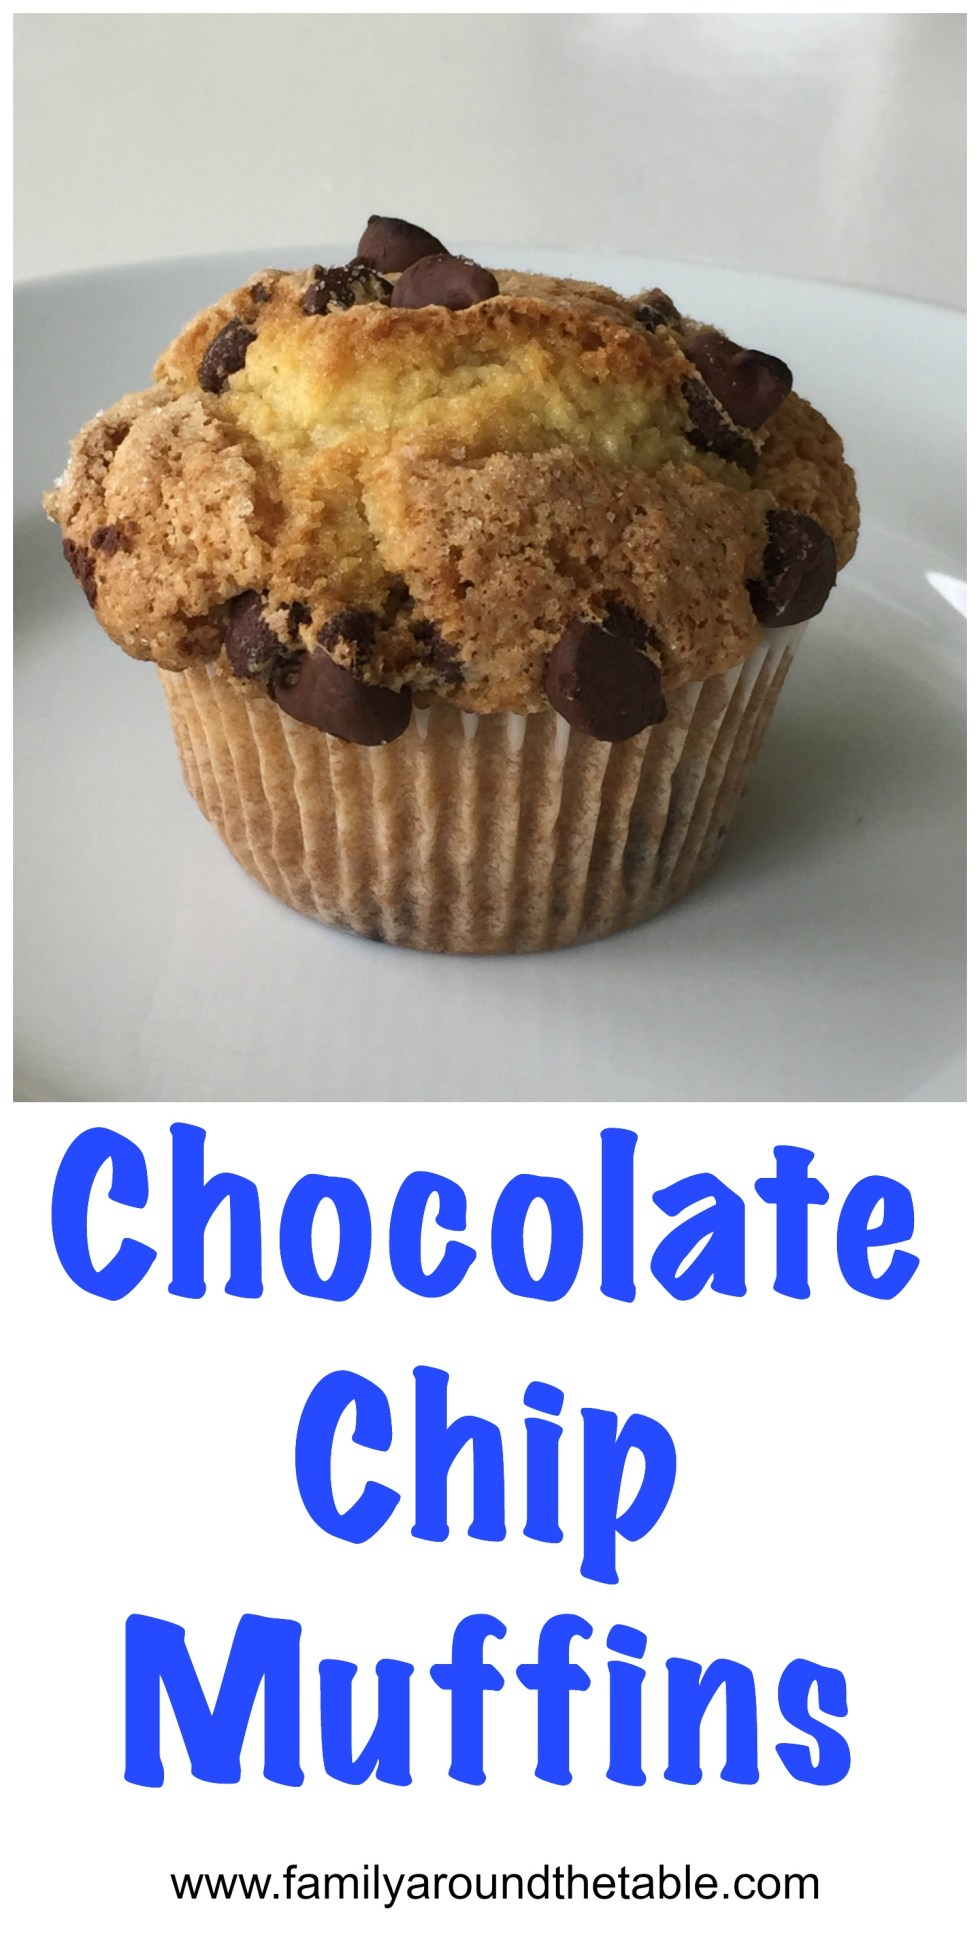 Chocolate chip muffins are a great grab and go breakfast or snack.